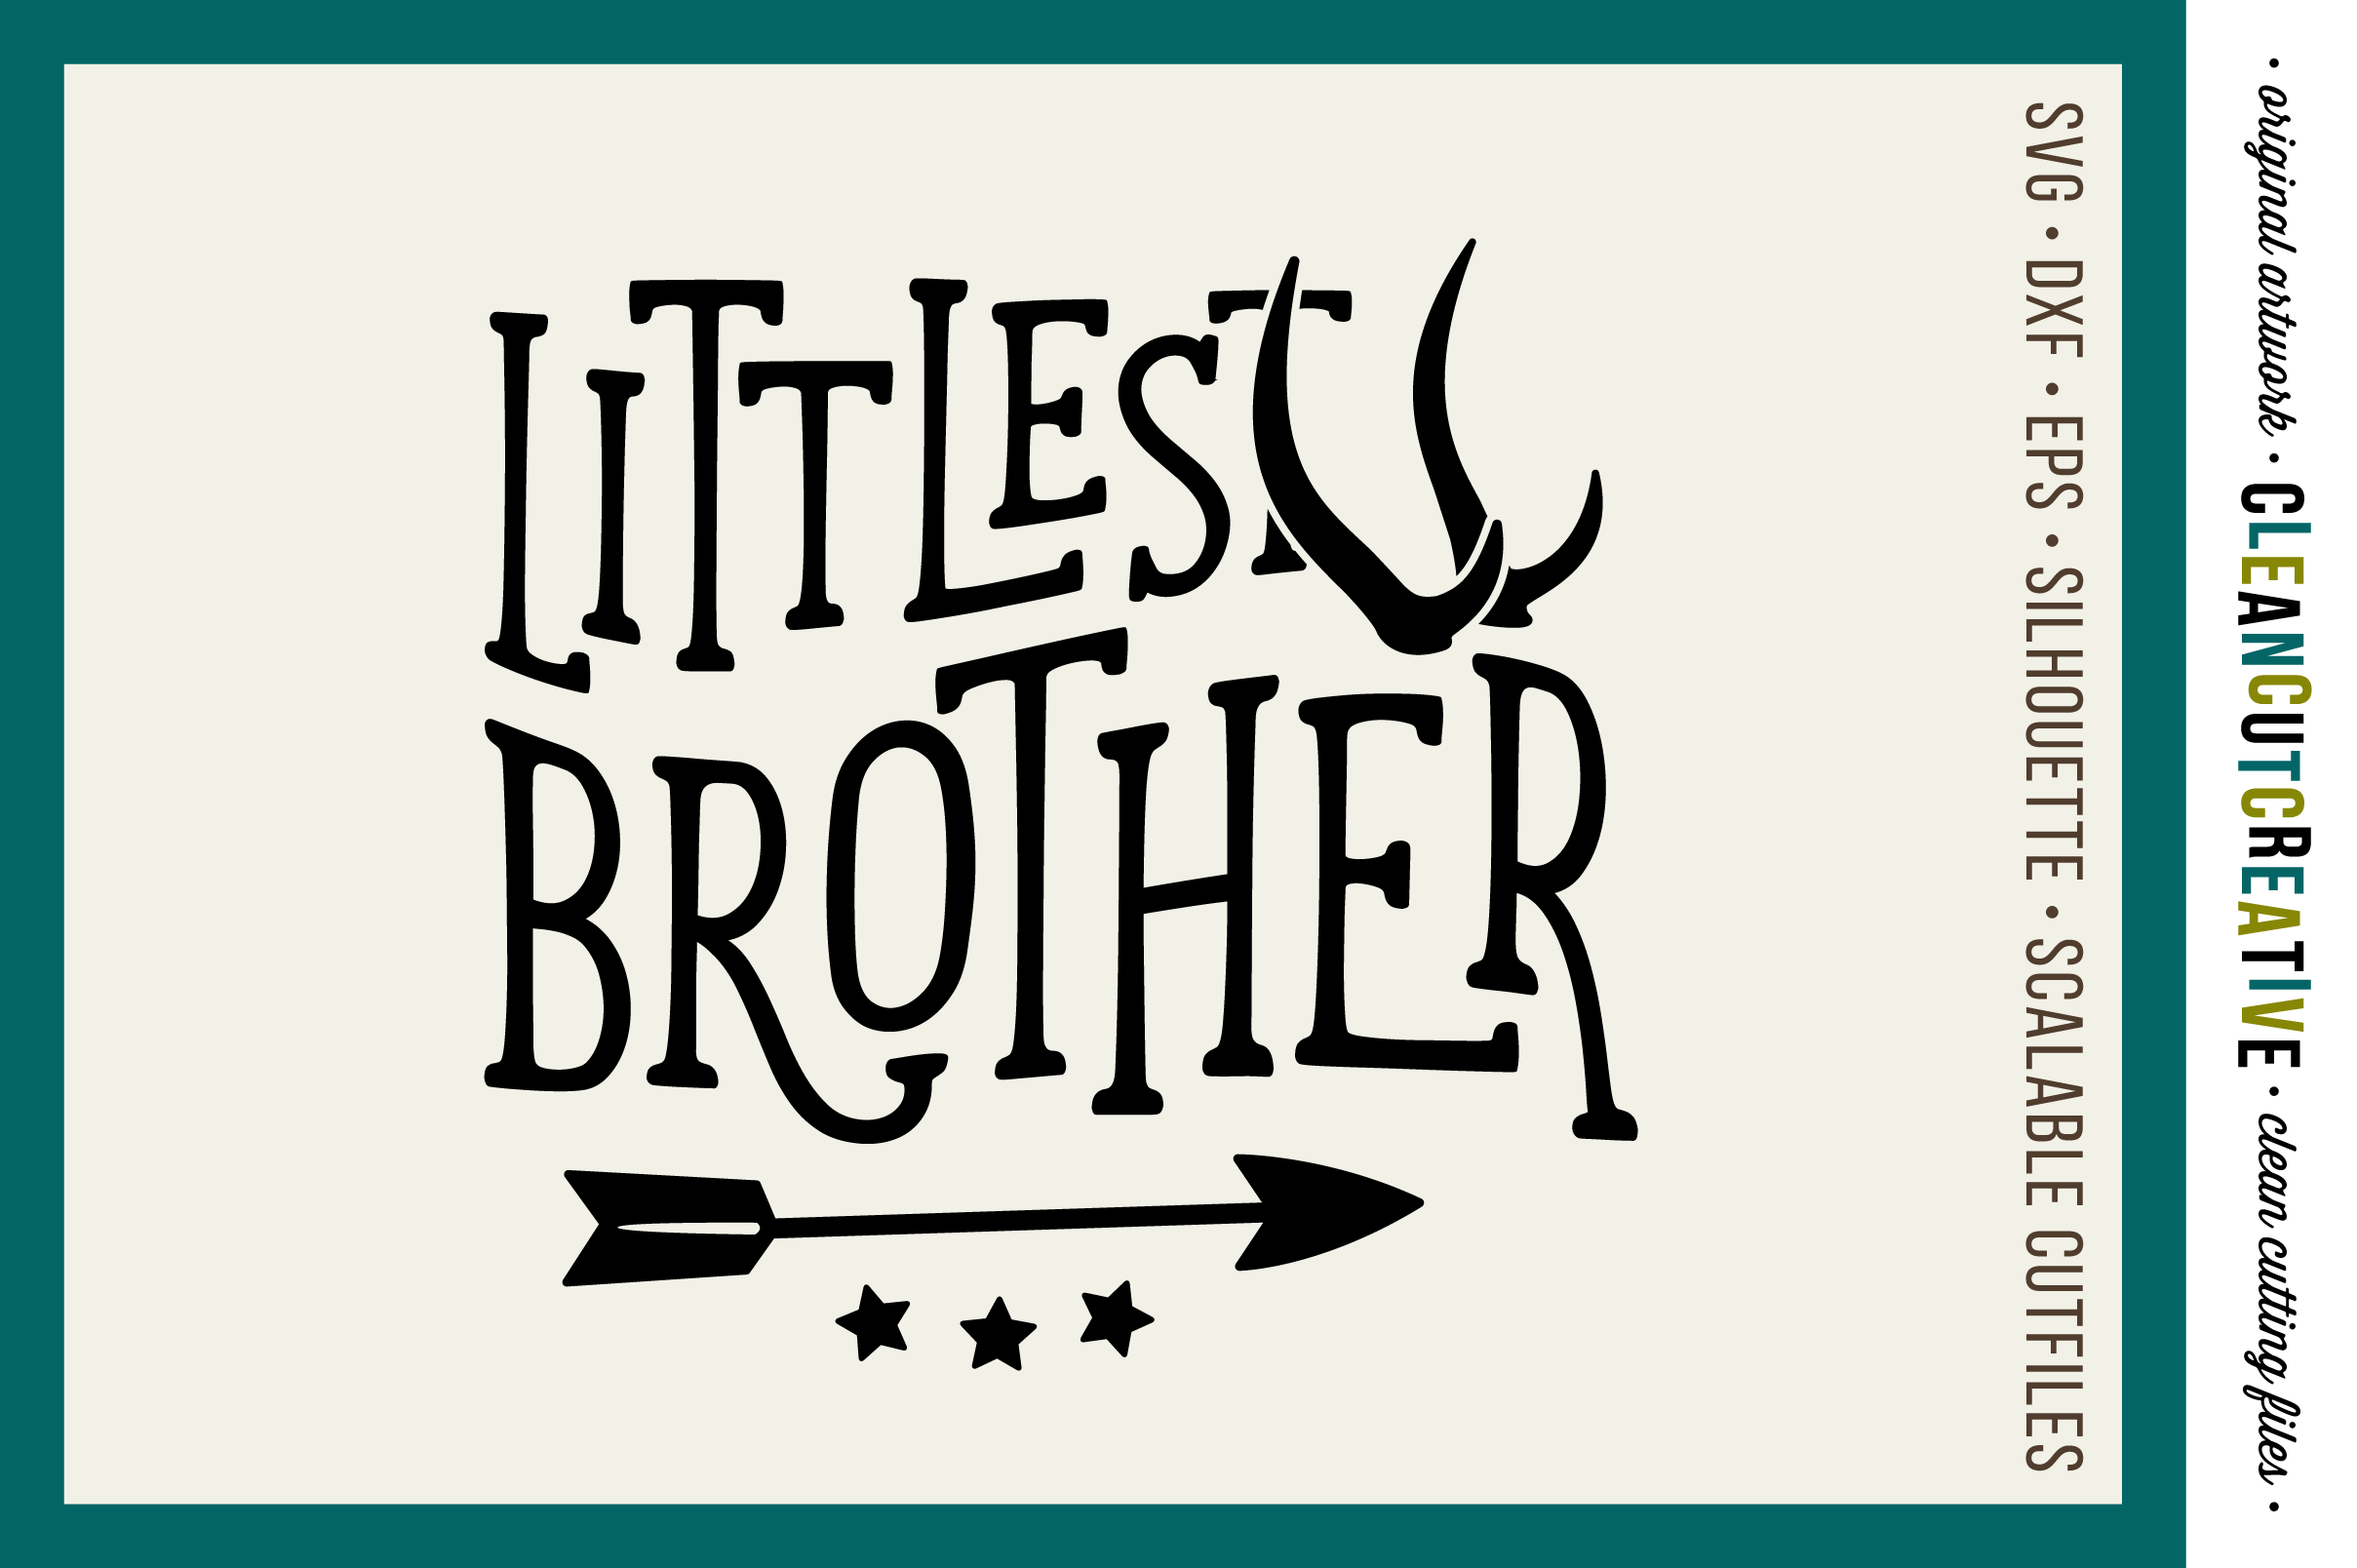 LITTLEST BROTHER cutfile design withantlers and arrow - SVG DXF EPS PNG - cut file cutting file clipart - Cricut and Silhouette - clean cutting files example image 1